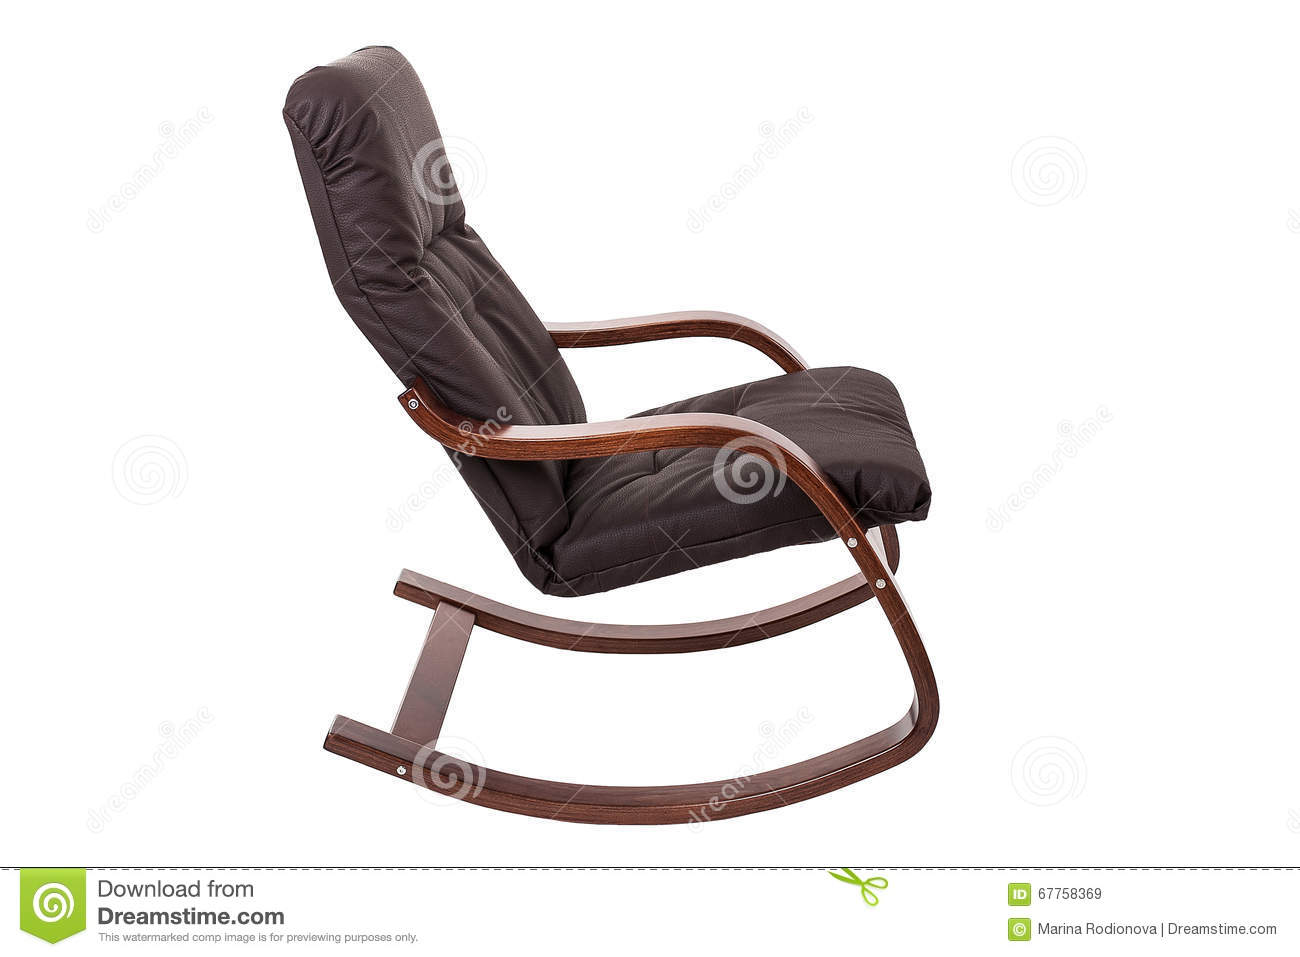 Pleasant Brown Rocking Chair Isolated On A White Background Stock Inzonedesignstudio Interior Chair Design Inzonedesignstudiocom